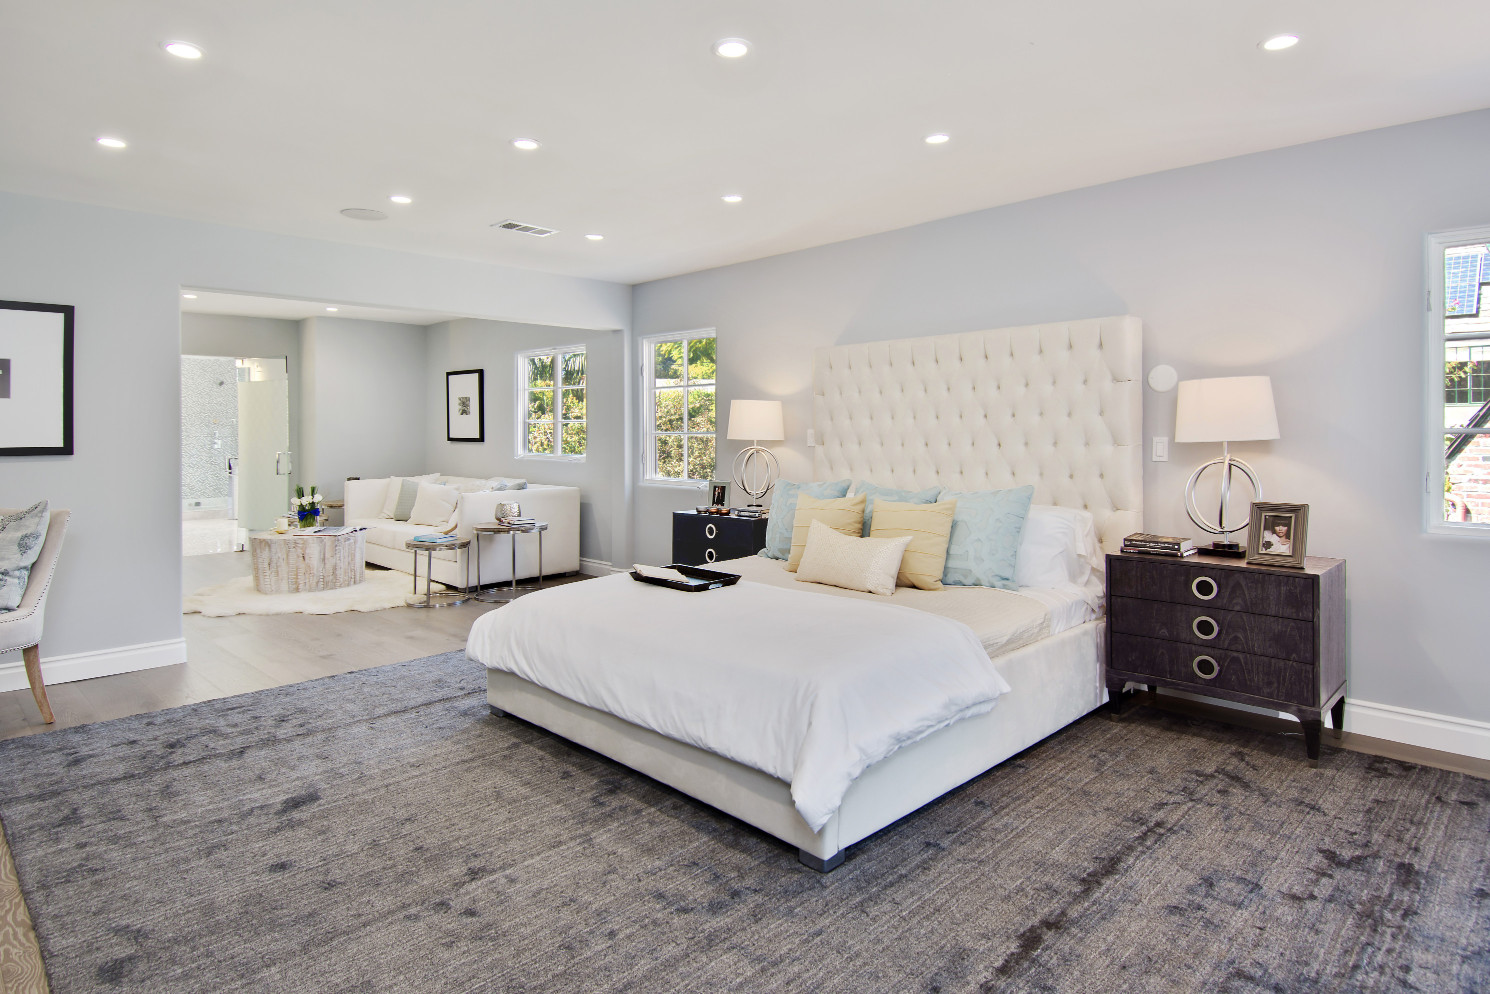 haute residence sophisticated beverly hills spanish style home two additional en suite bedrooms are upstairs one with private entrance